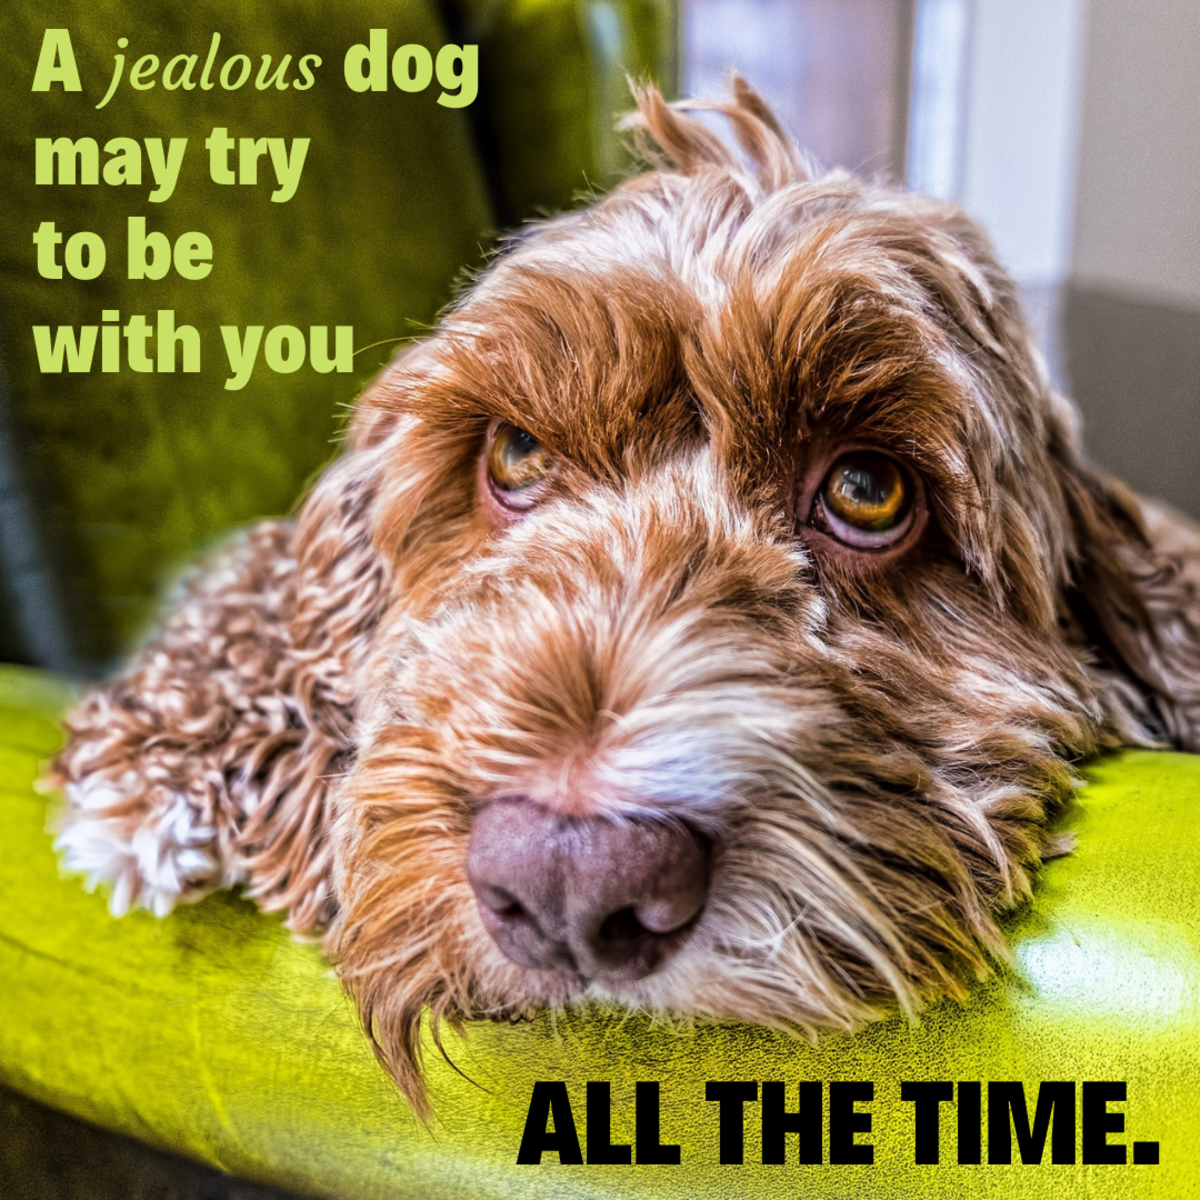 If your dog is always underfoot, it may be a sign of jealousy.